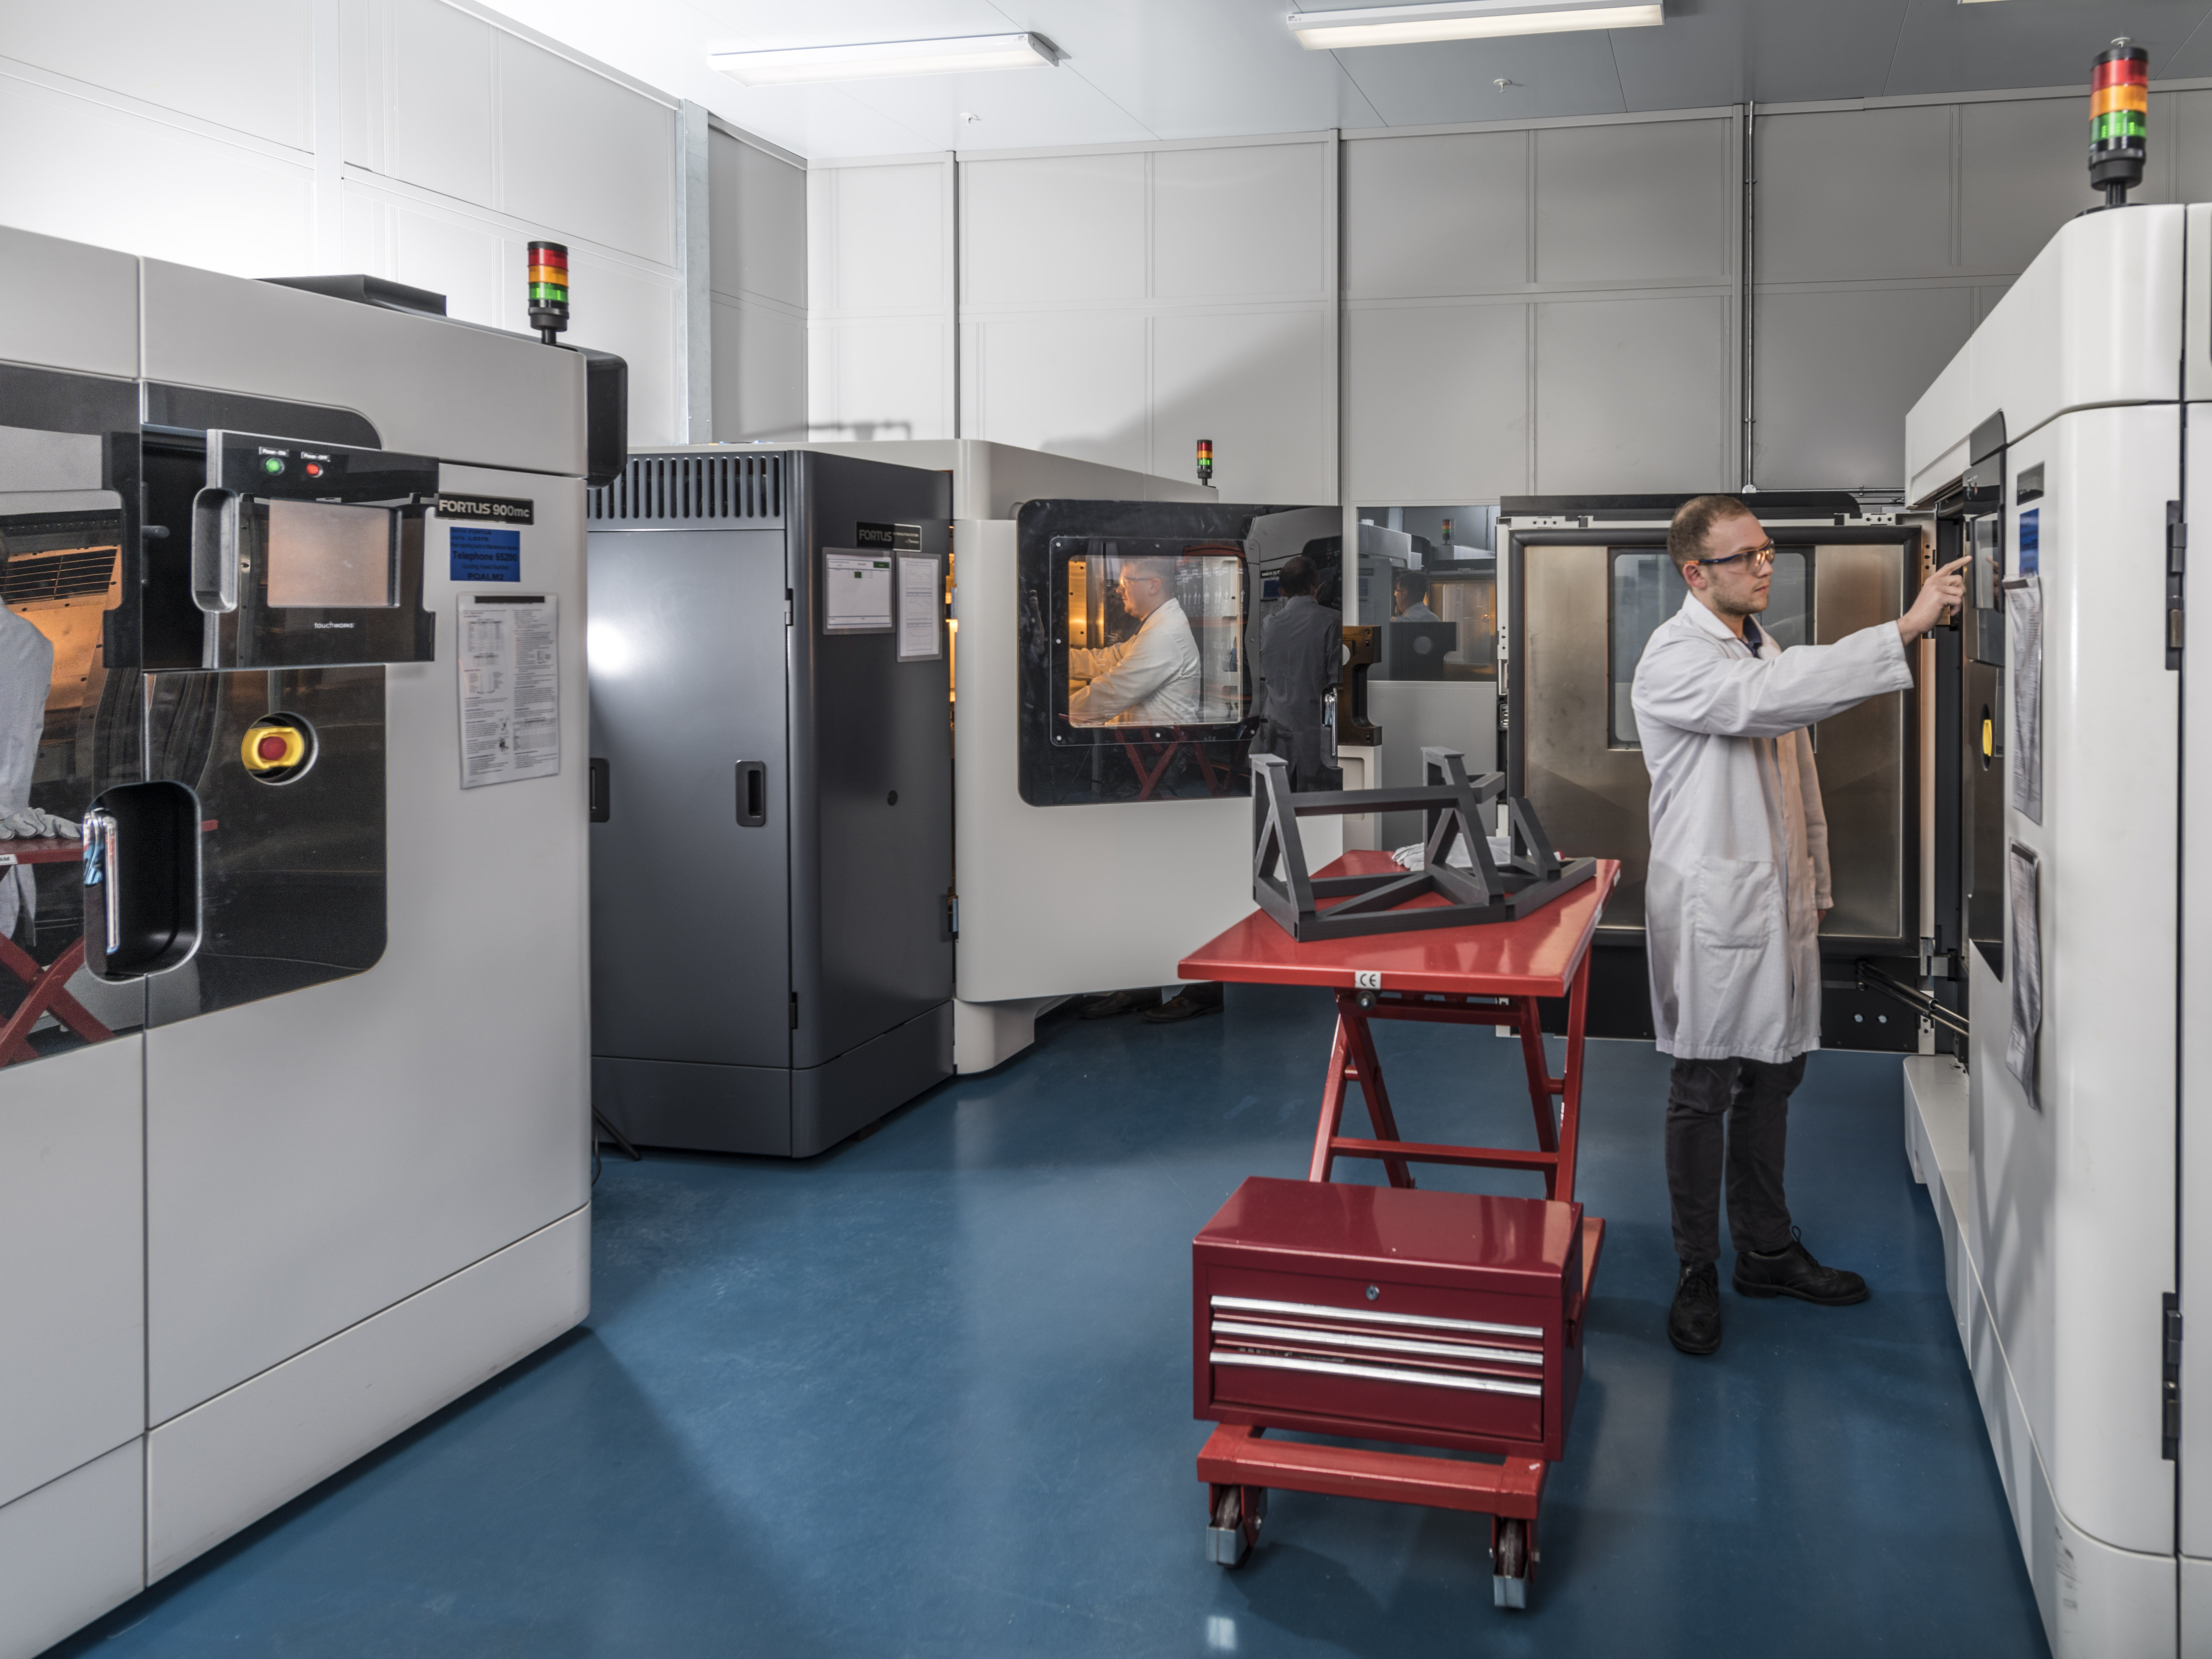 BAE Systems' fourth Stratasys F900 3D printer will serve as an integral aspect of the company's Factory of the Future initiative.